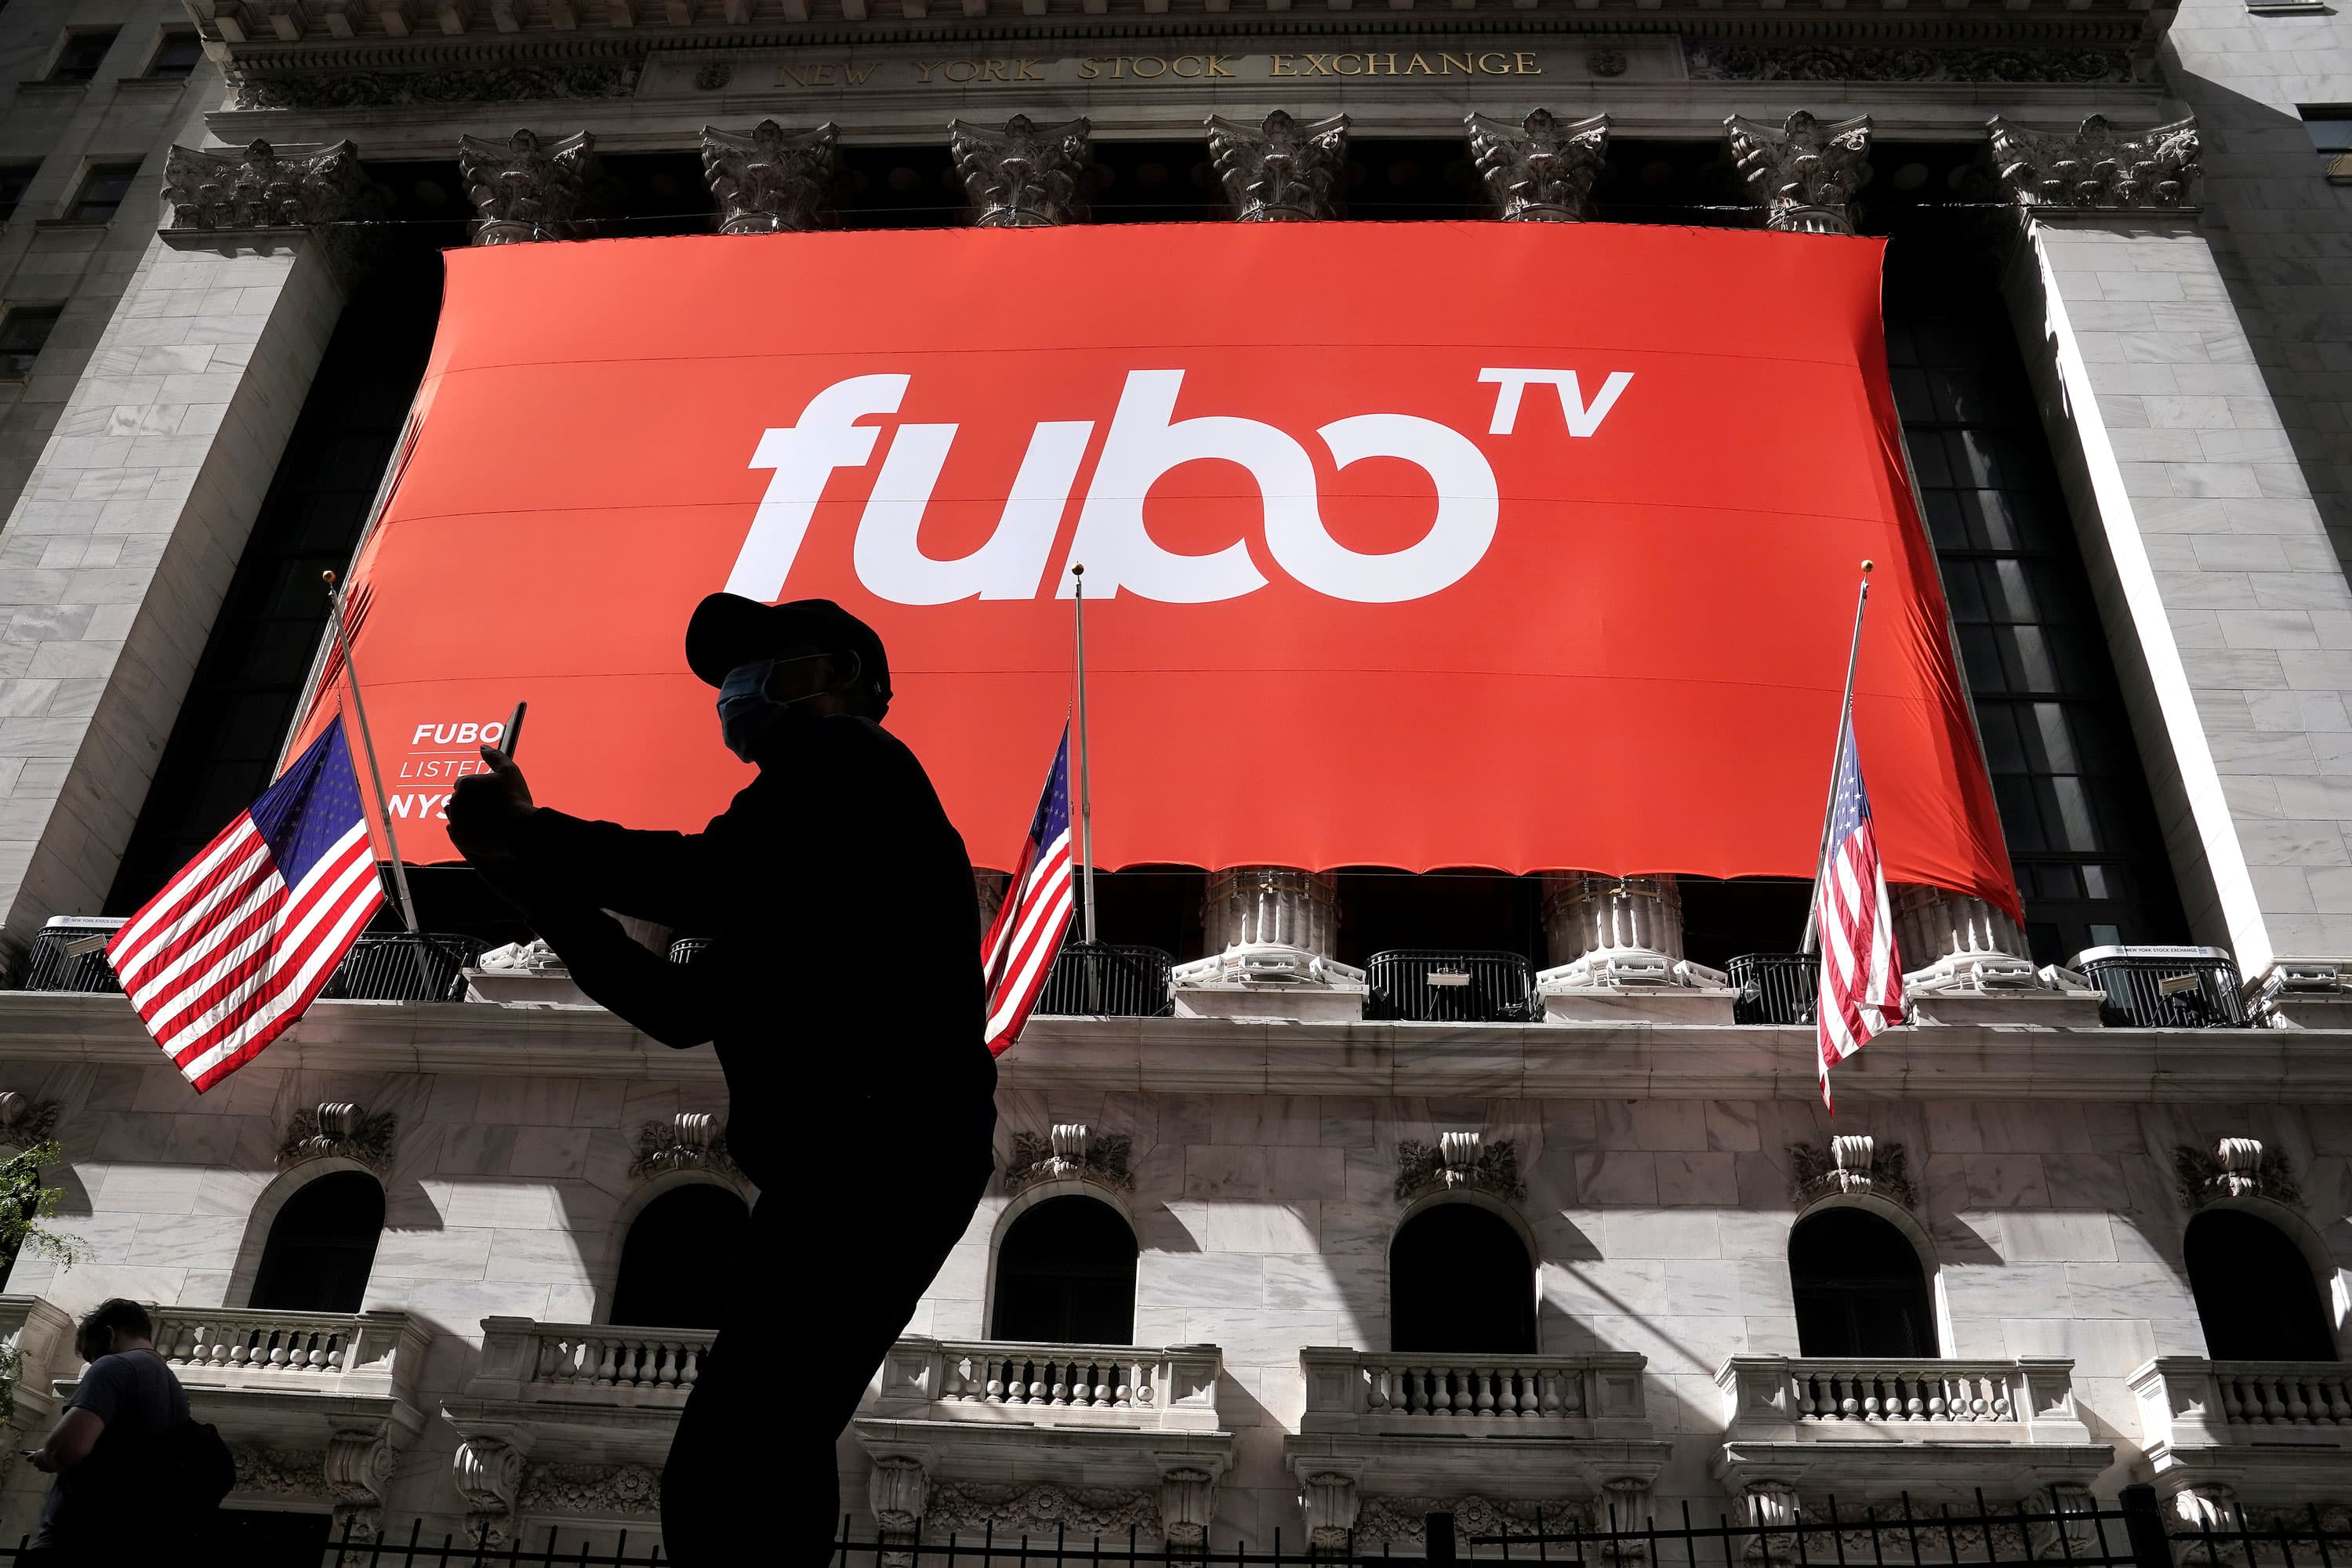 Stocks making the biggest moves after hours: fuboTV, Opendoor Technologies, Electronic Arts & more